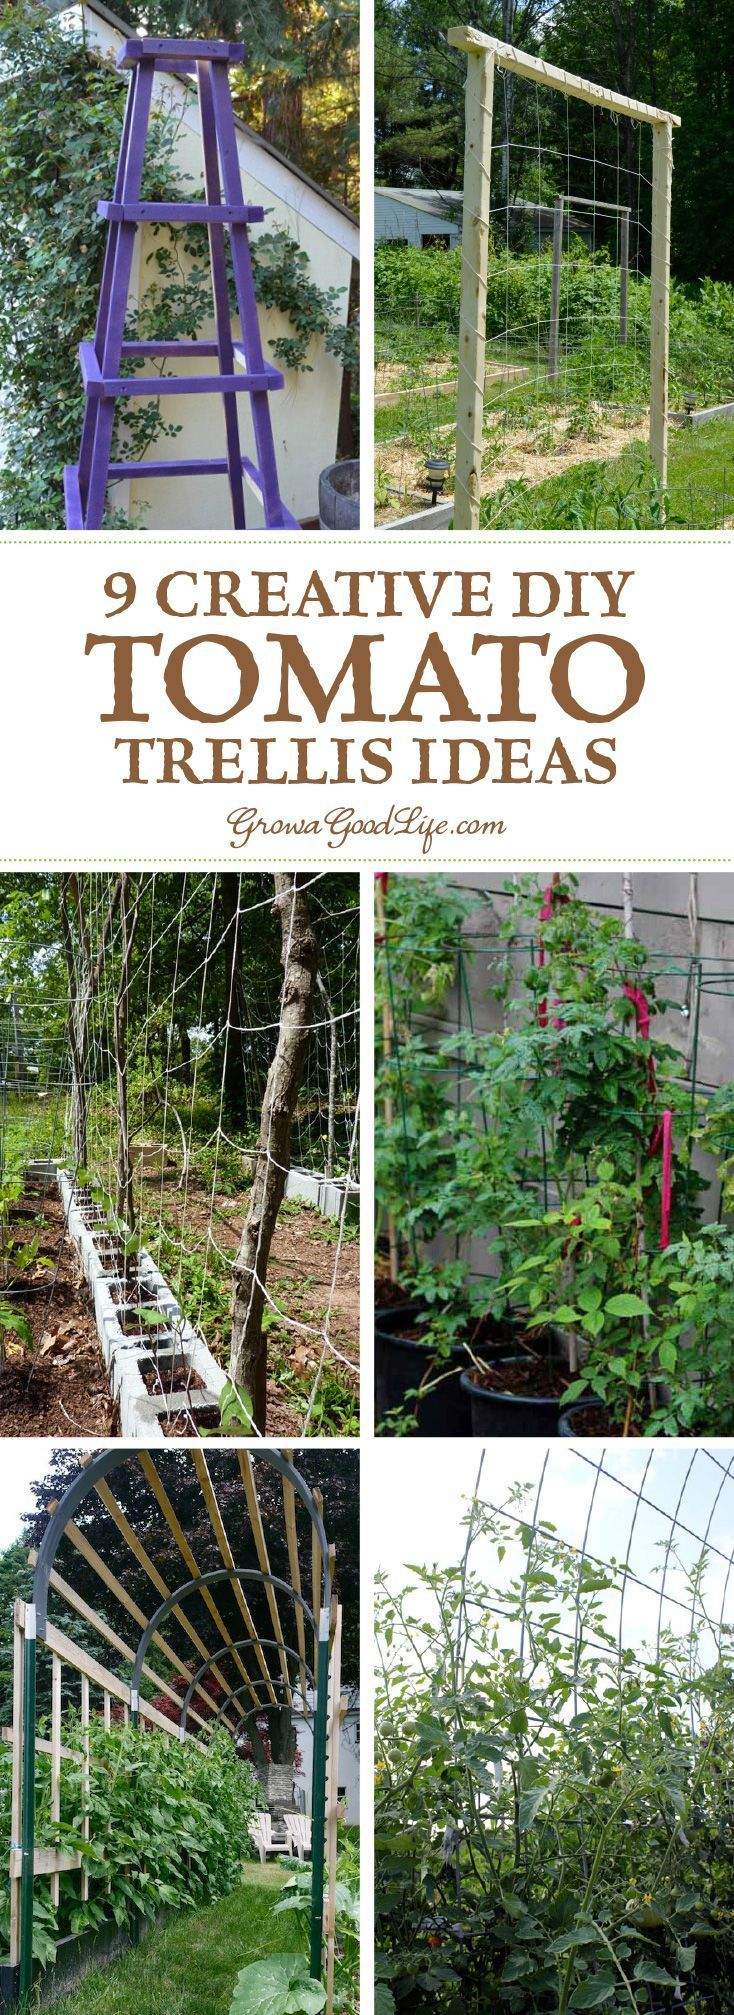 Diy plant supports - 9 Creative Diy Tomato Trellis Ideas